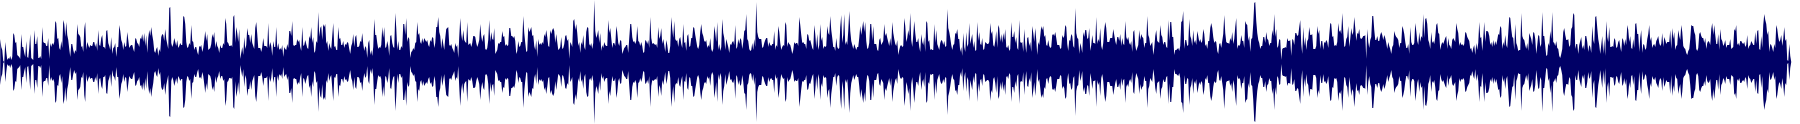 waveform of track #68259